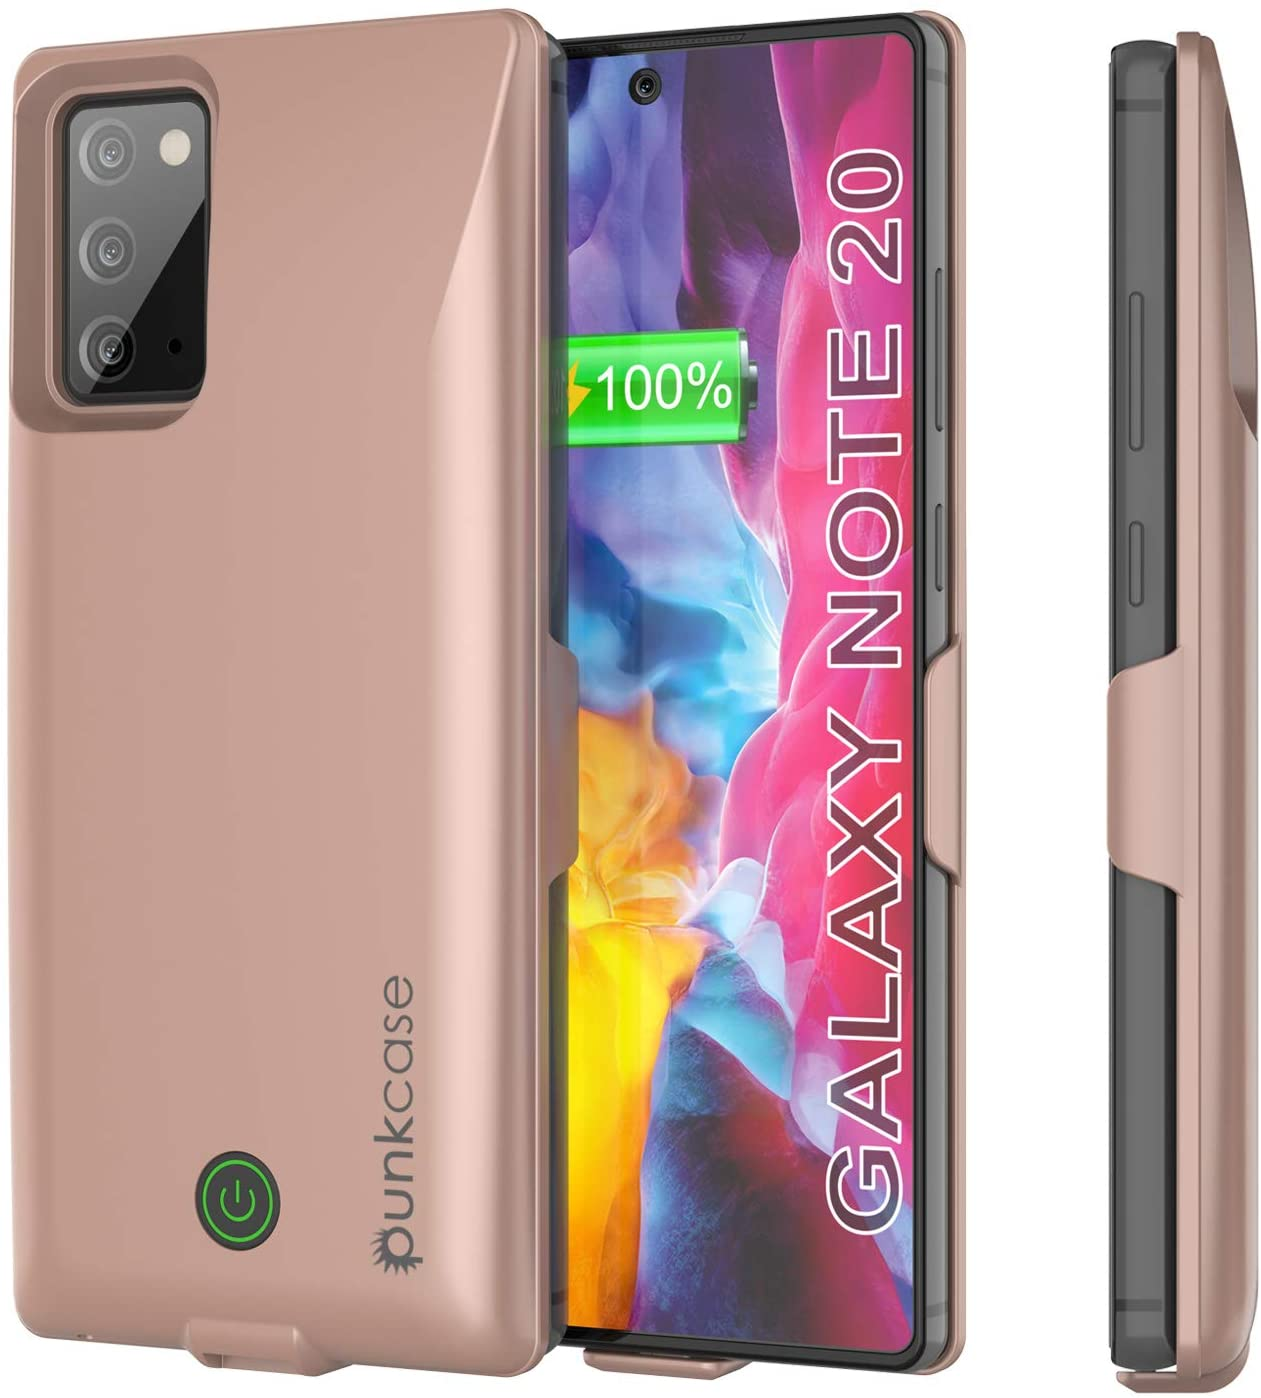 Galaxy Note 20 6000mAH Battery Charger PunkJuice 2.0 Slim Case [Rose-Gold]